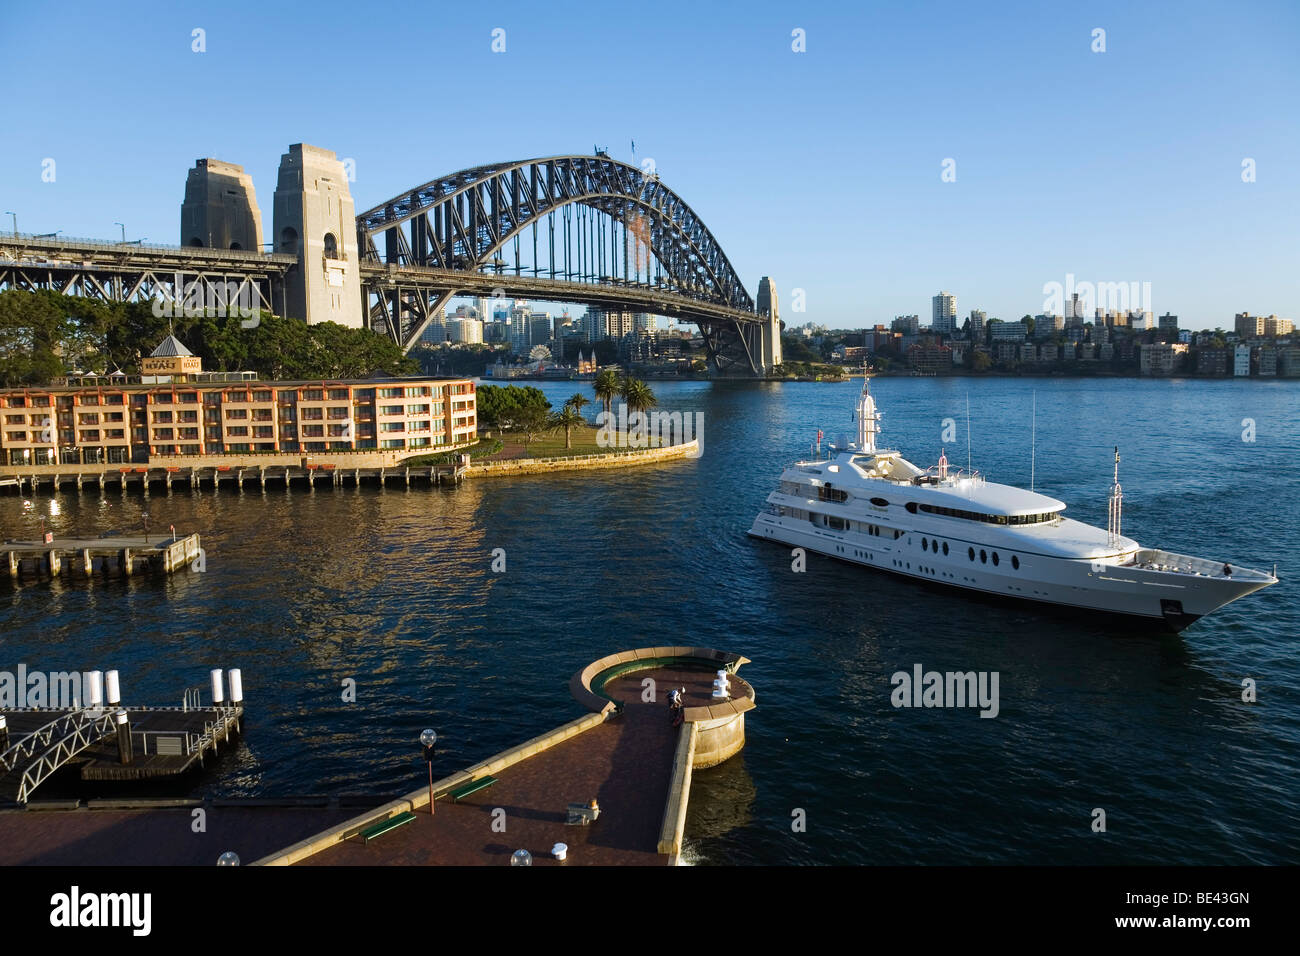 Eine Luxus-Yacht-Motoren in Campbells Cove mit der Sydney Harbour Bridge hinaus. Sydney, New South Wales, Australien Stockbild